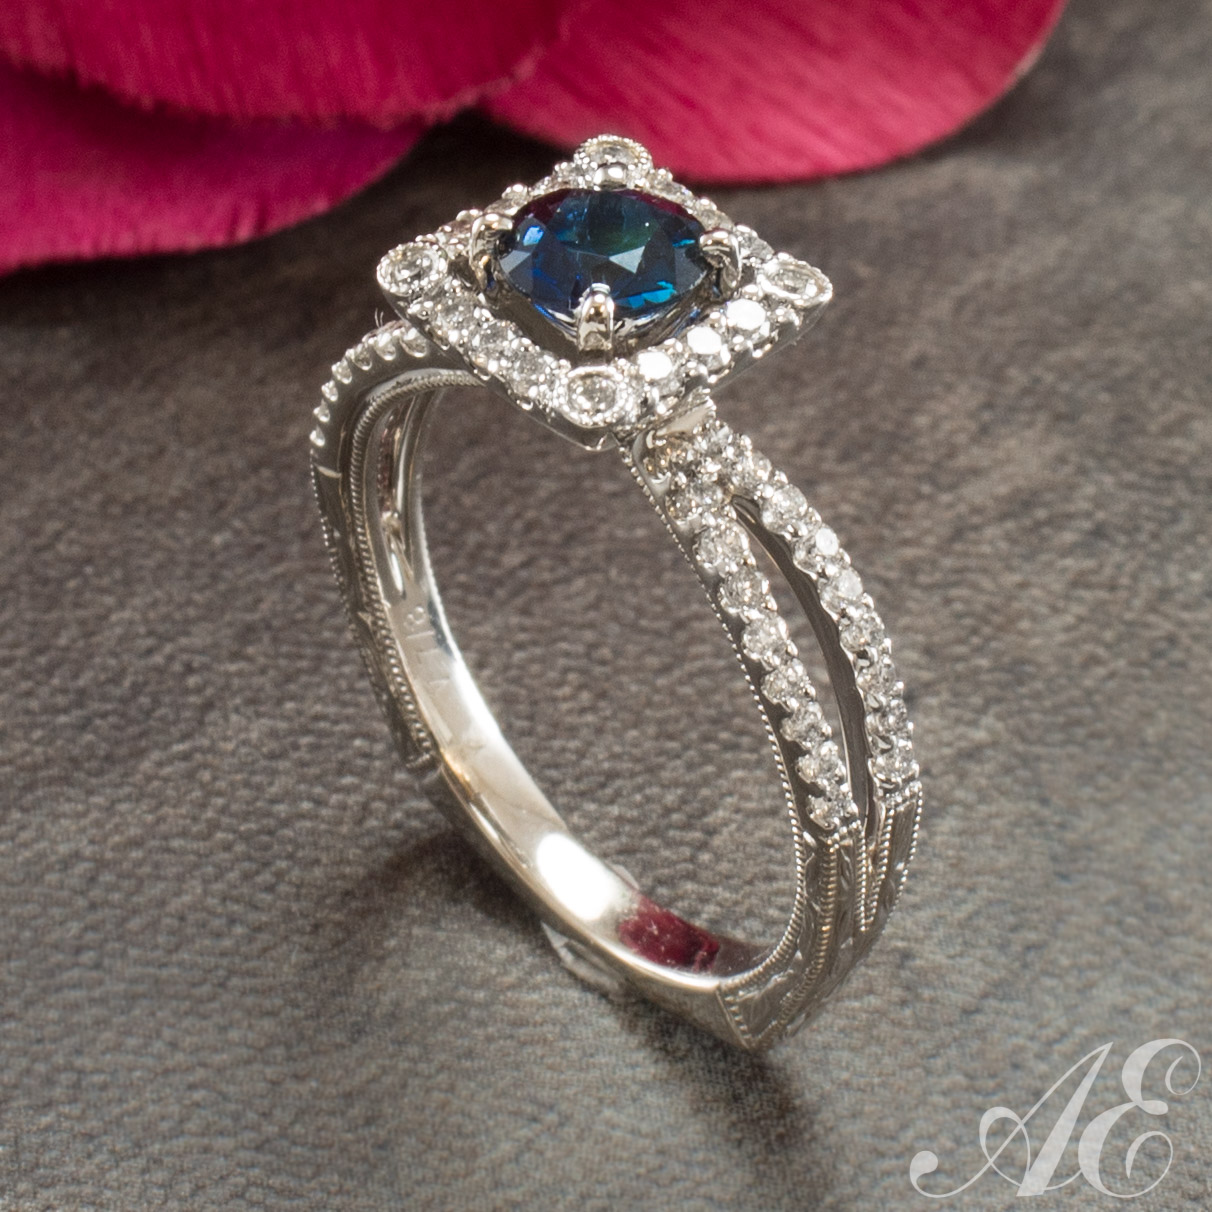 fall in love with your jewelry again